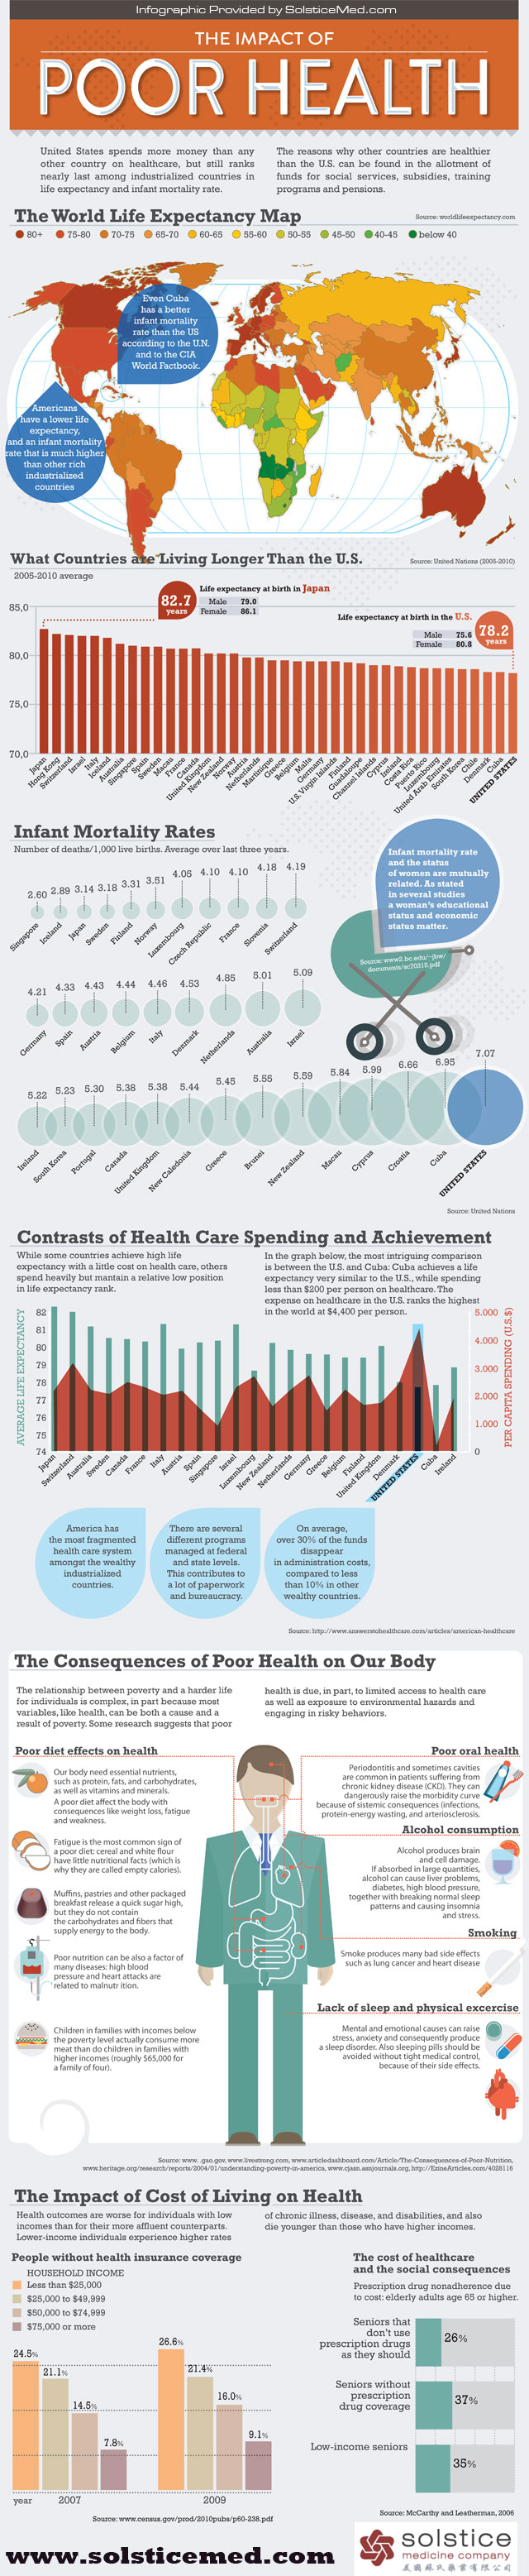 Poor-Health-in-America-Infographic